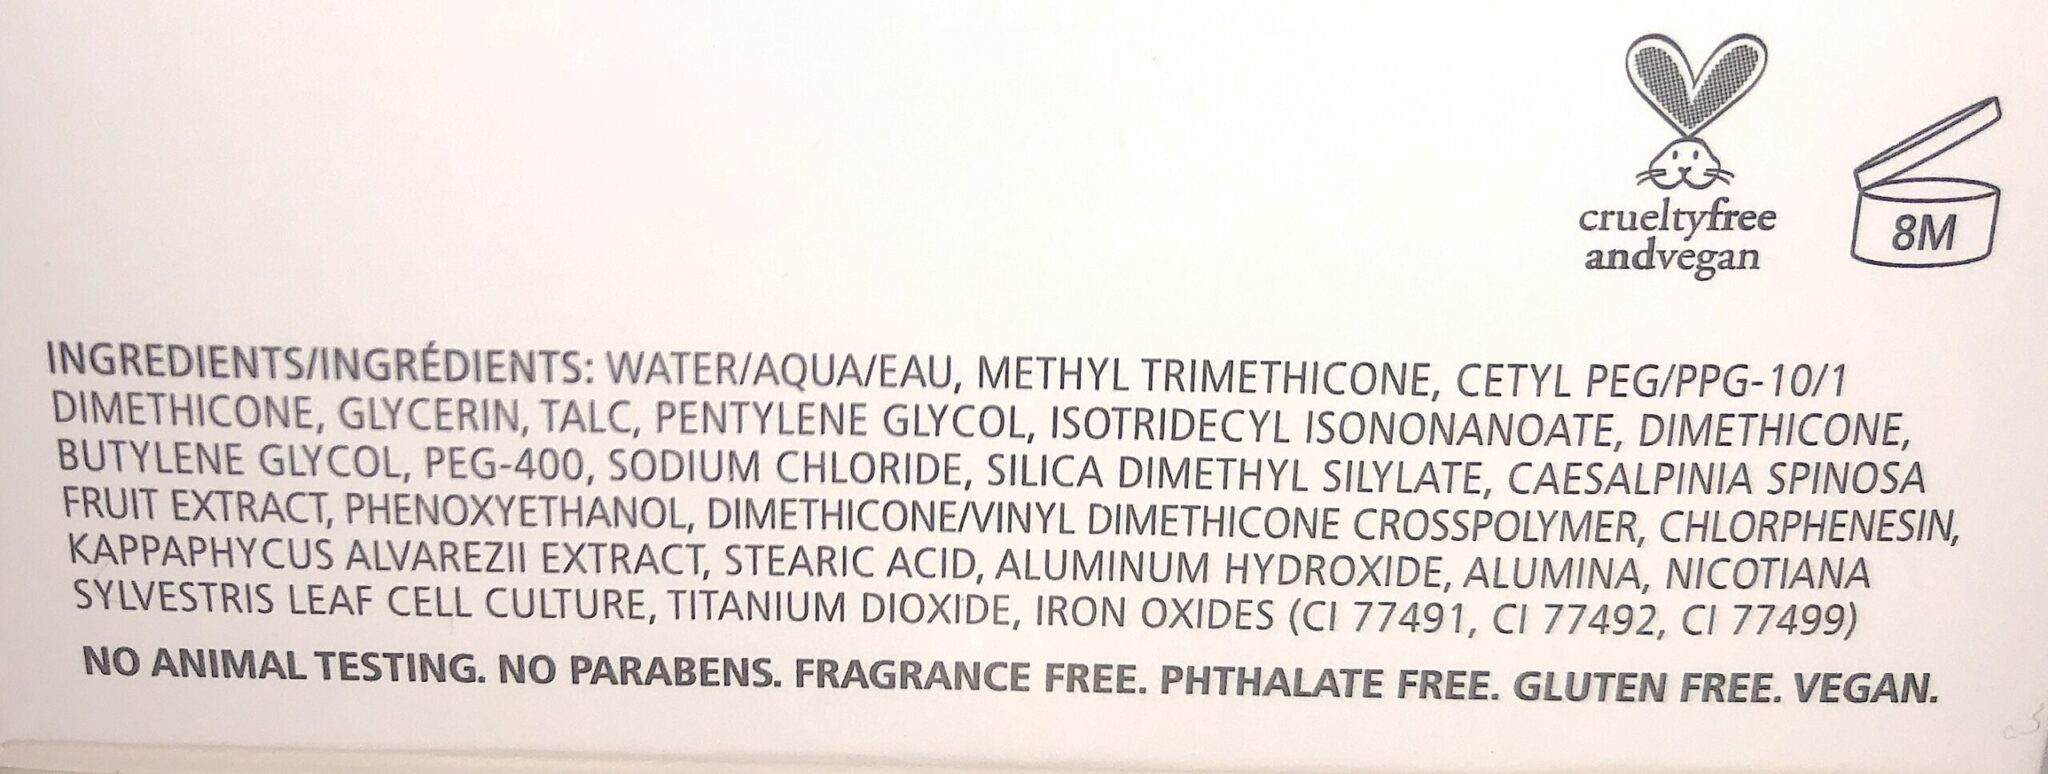 THE CHANTECAILLE FUTURE SKIN CUSHION INGREDIENTS